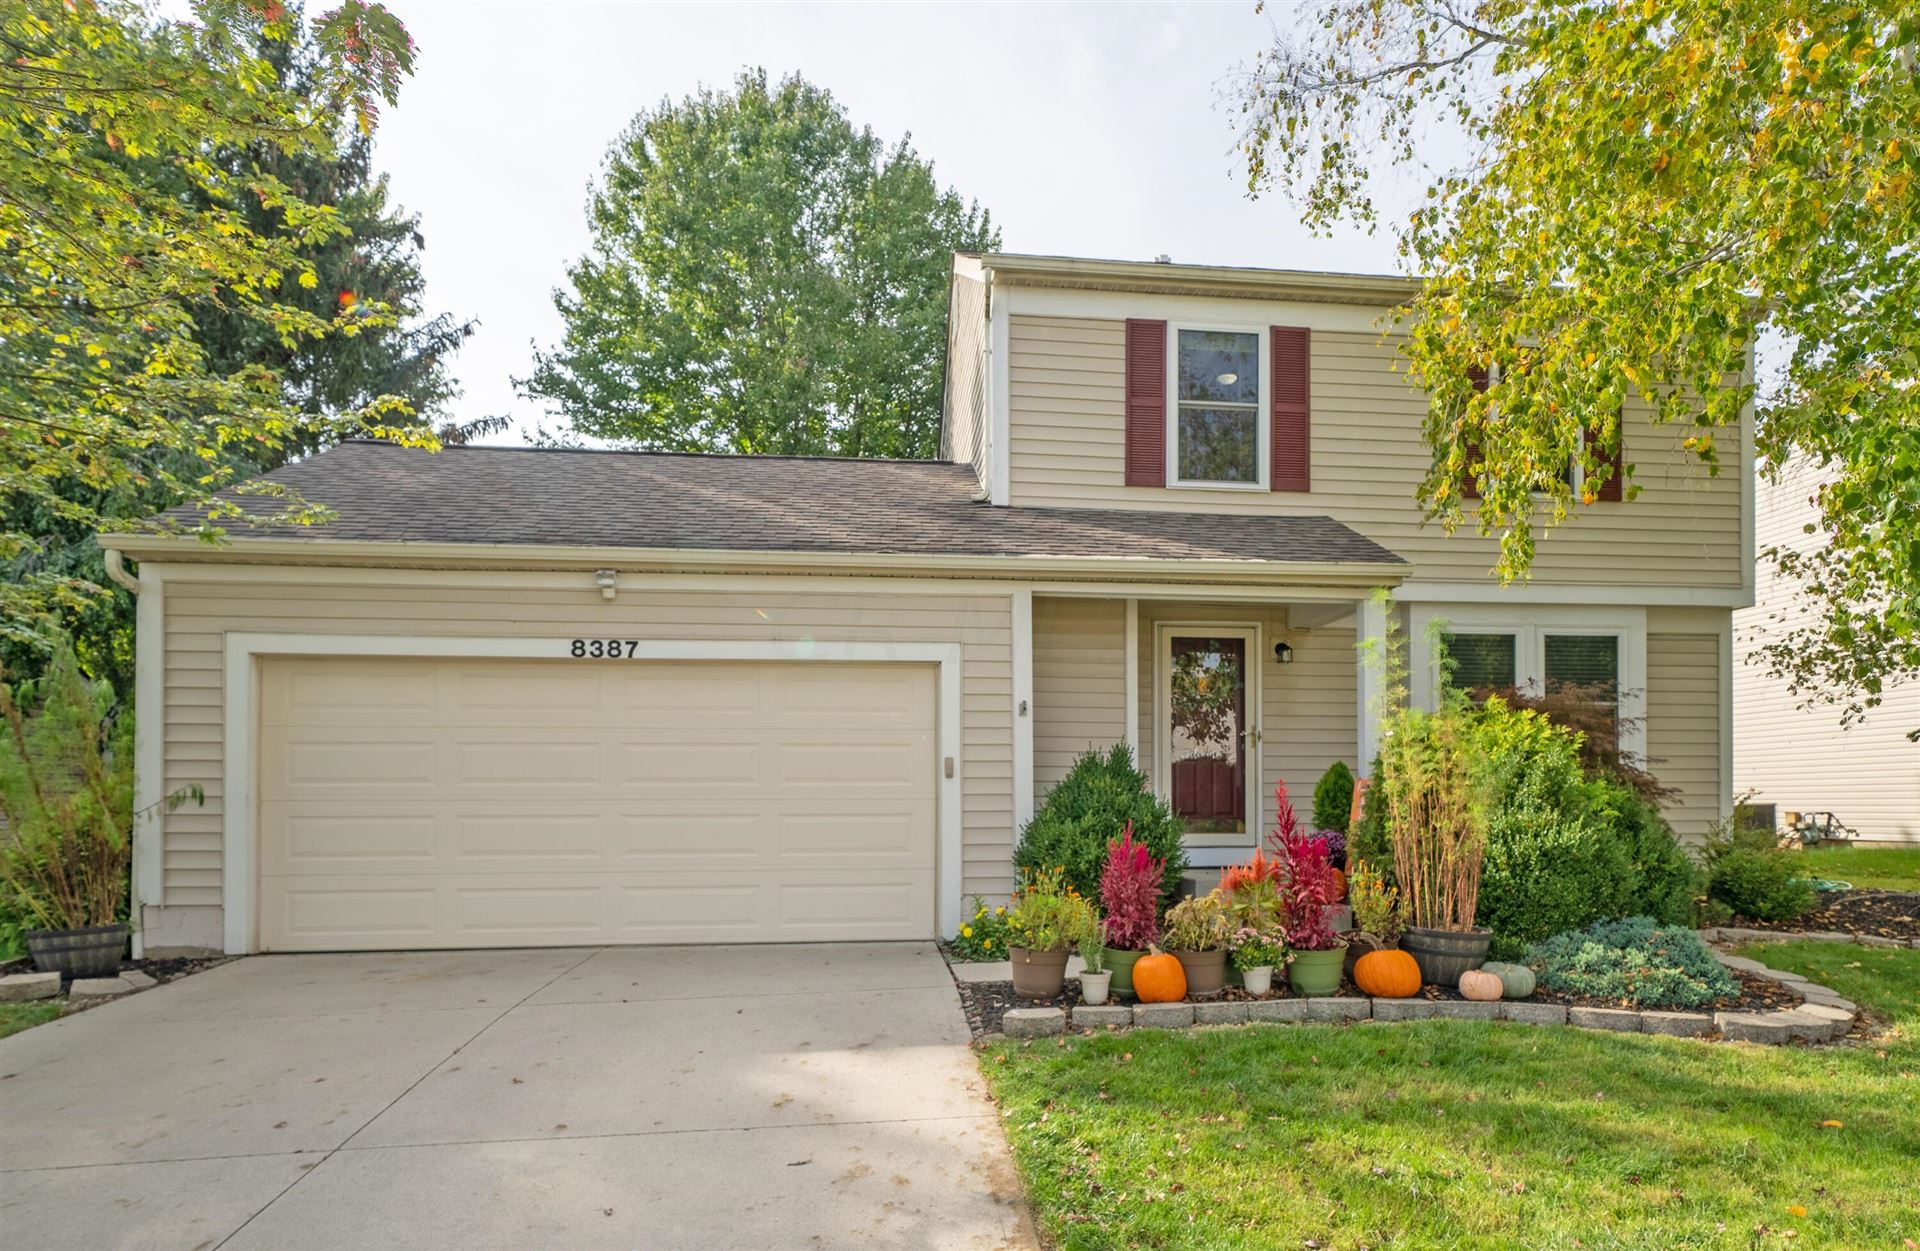 Photo of 8387 Gallop Drive, Powell, OH 43065 (MLS # 221040567)